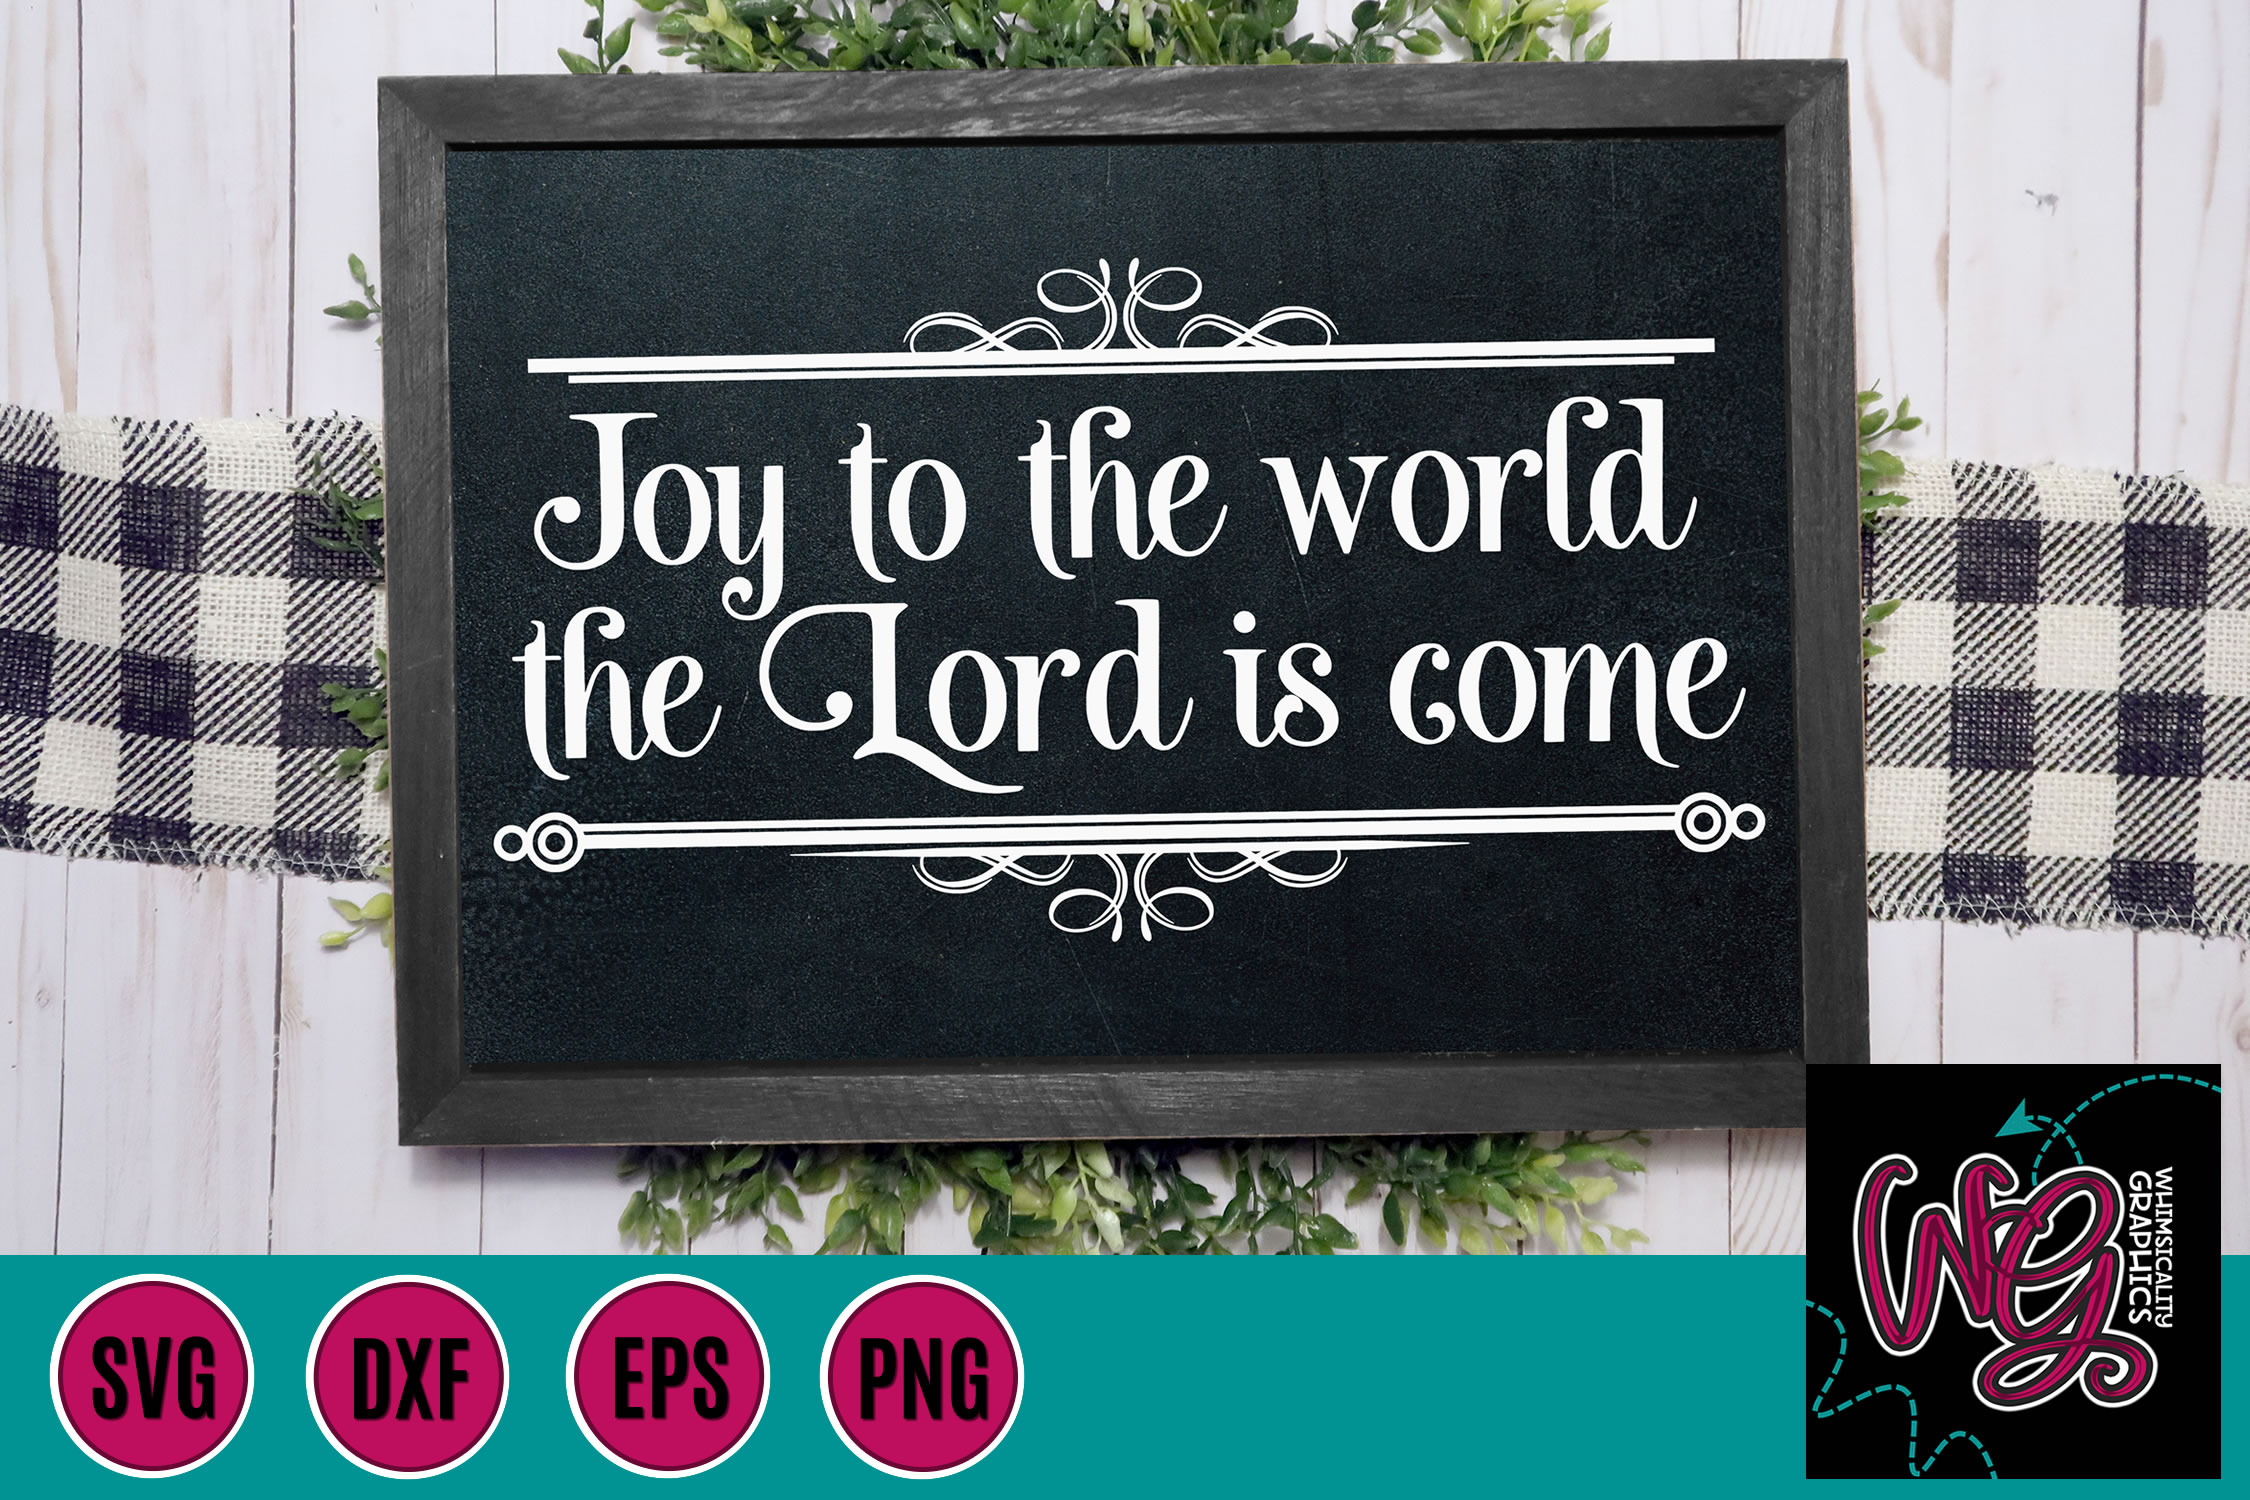 Joy to the World Christmas SVG, DXF, PNG, EPS example image 1